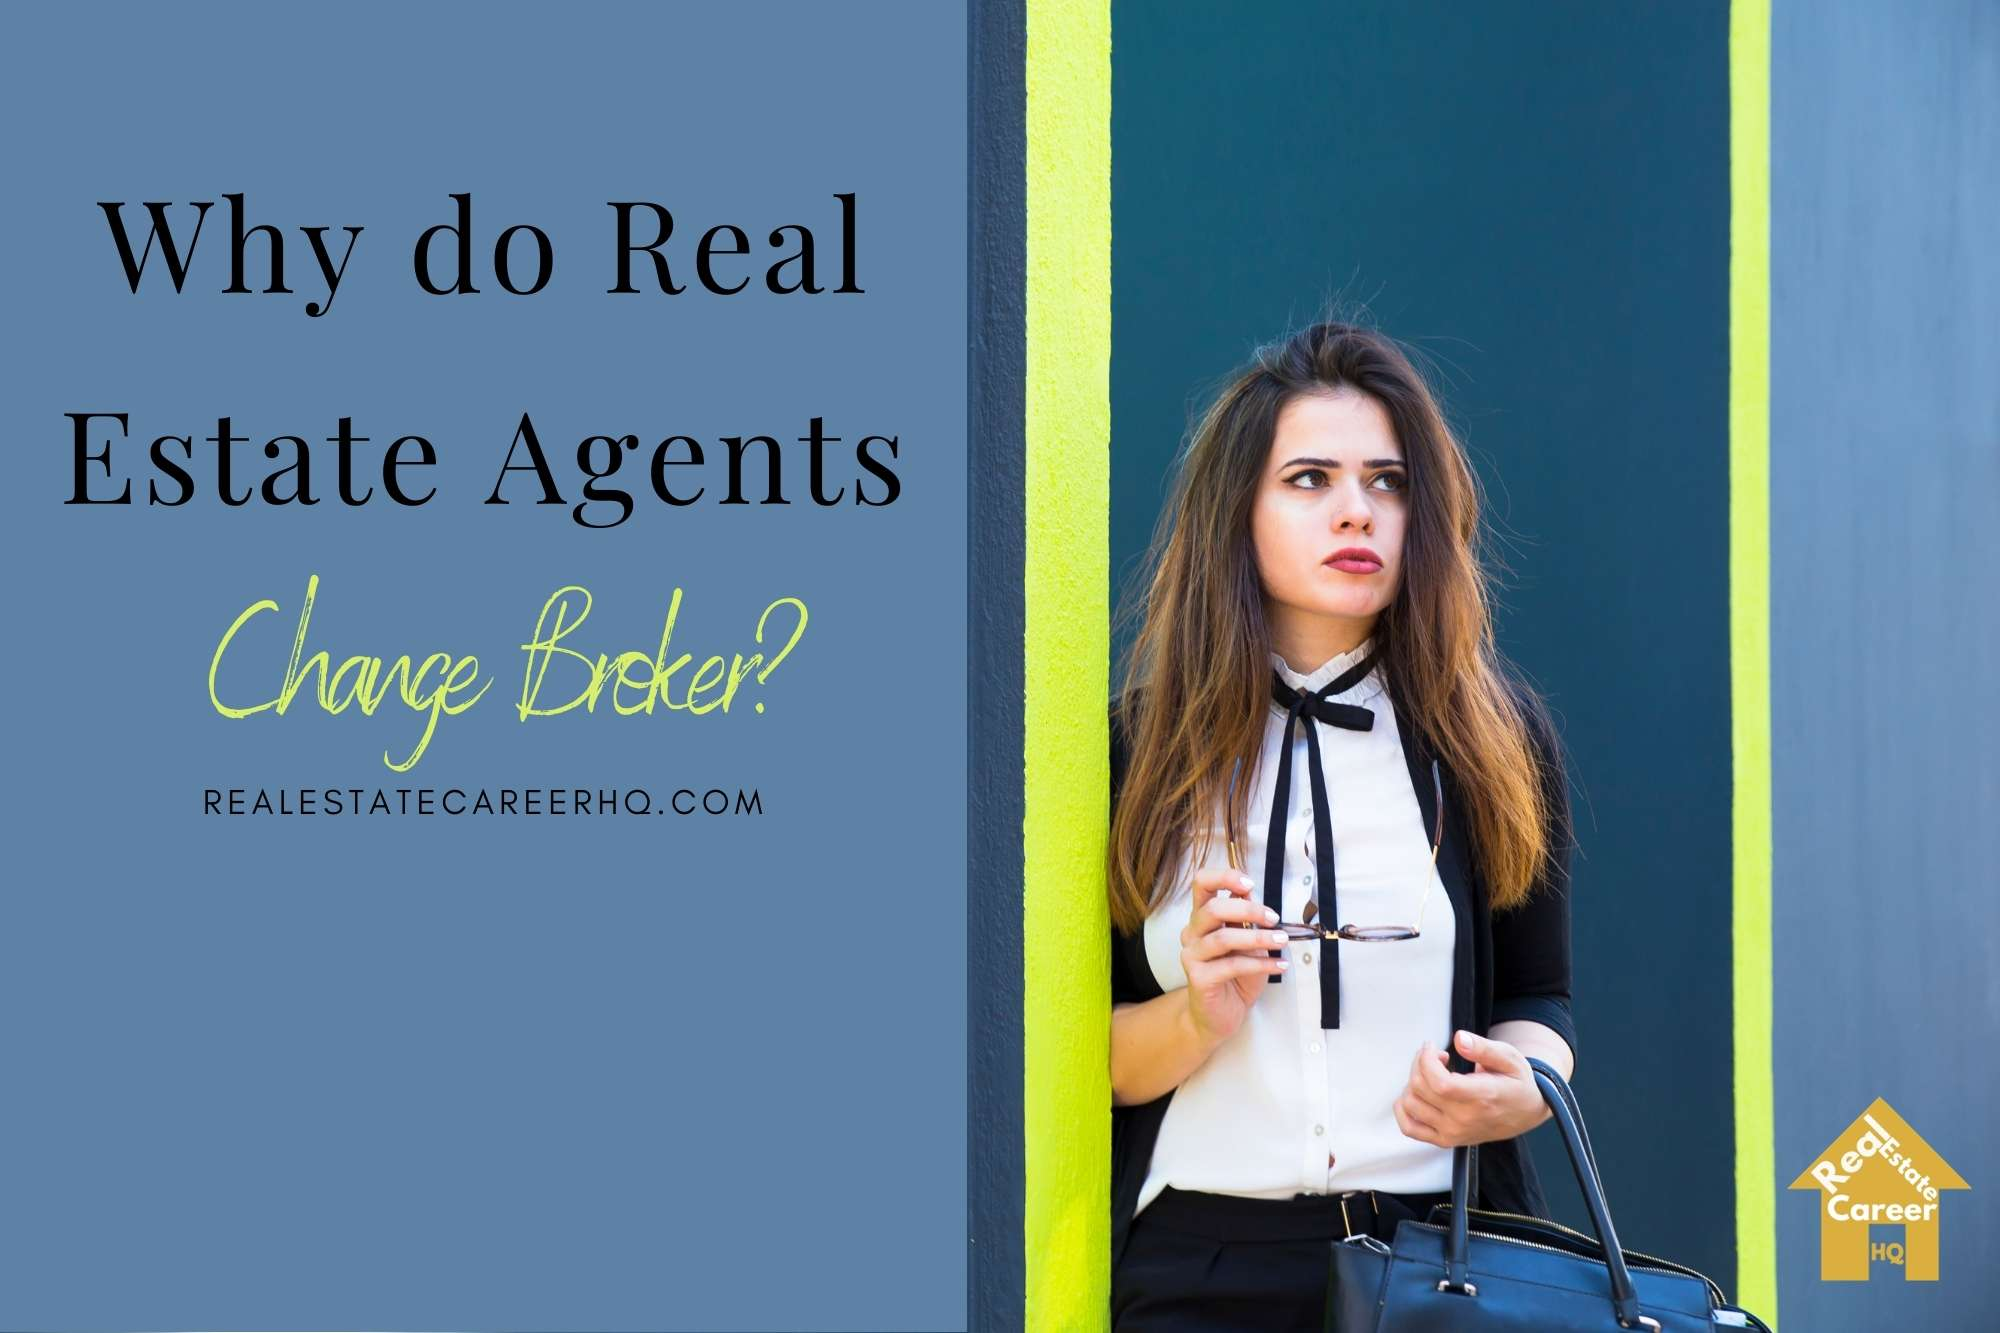 why real estate agents change broker